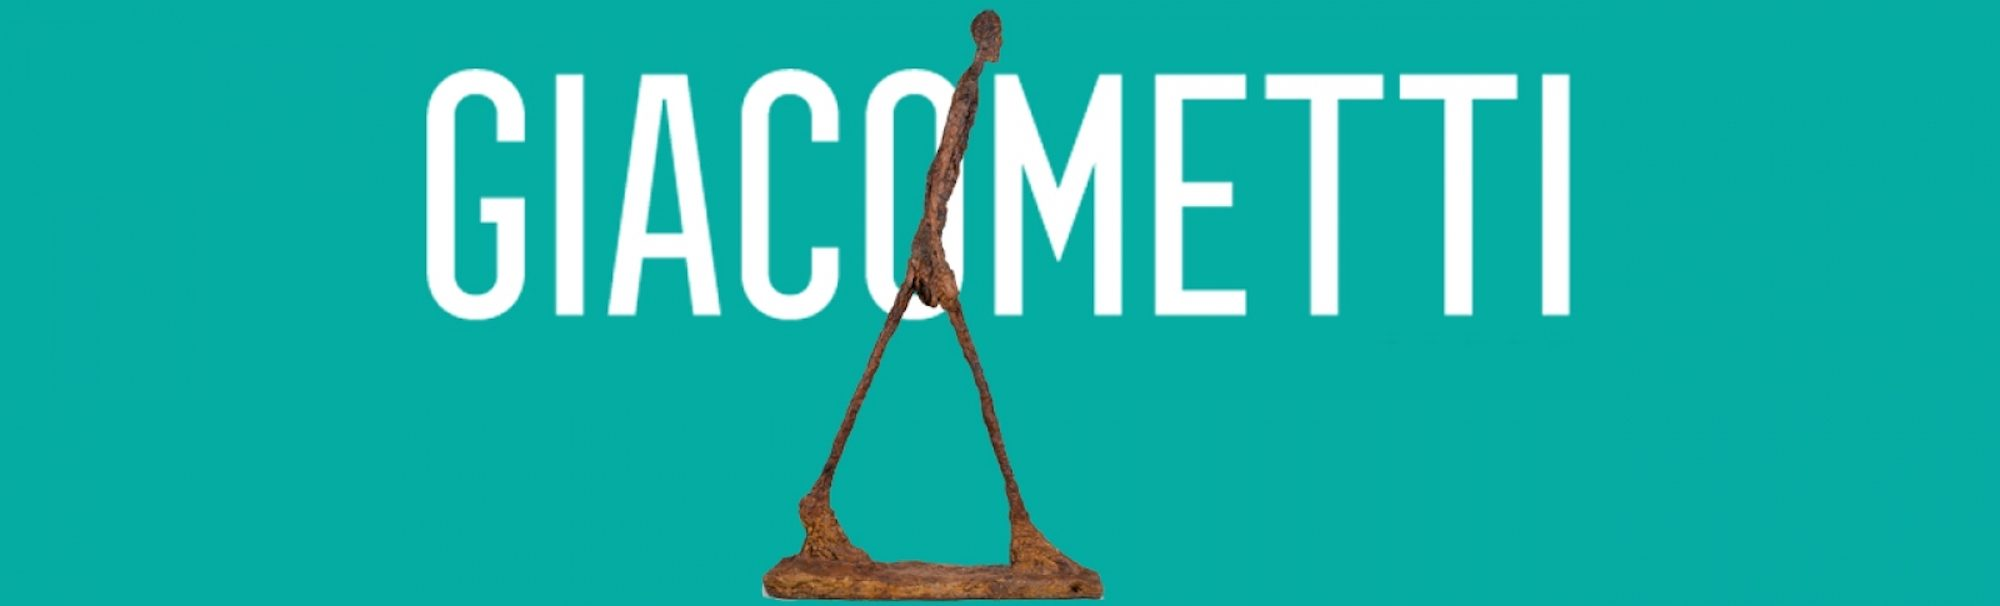 HiP Paris Blog rounds up what's on this September like a Giacometti exhibition.